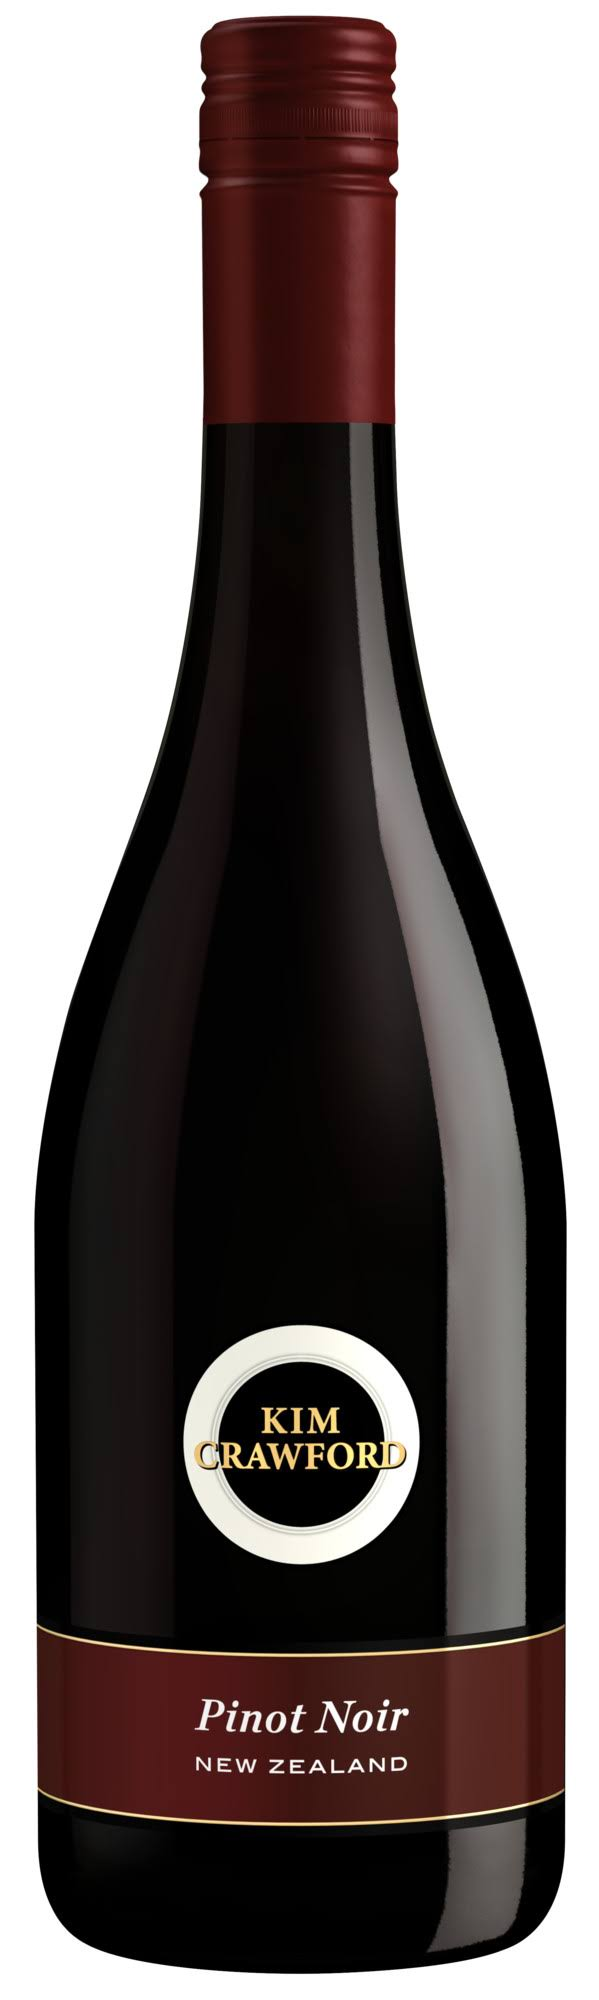 Kim Crawford Marlborough Pinot Noir Wine 2011 - South Island, New Zealand